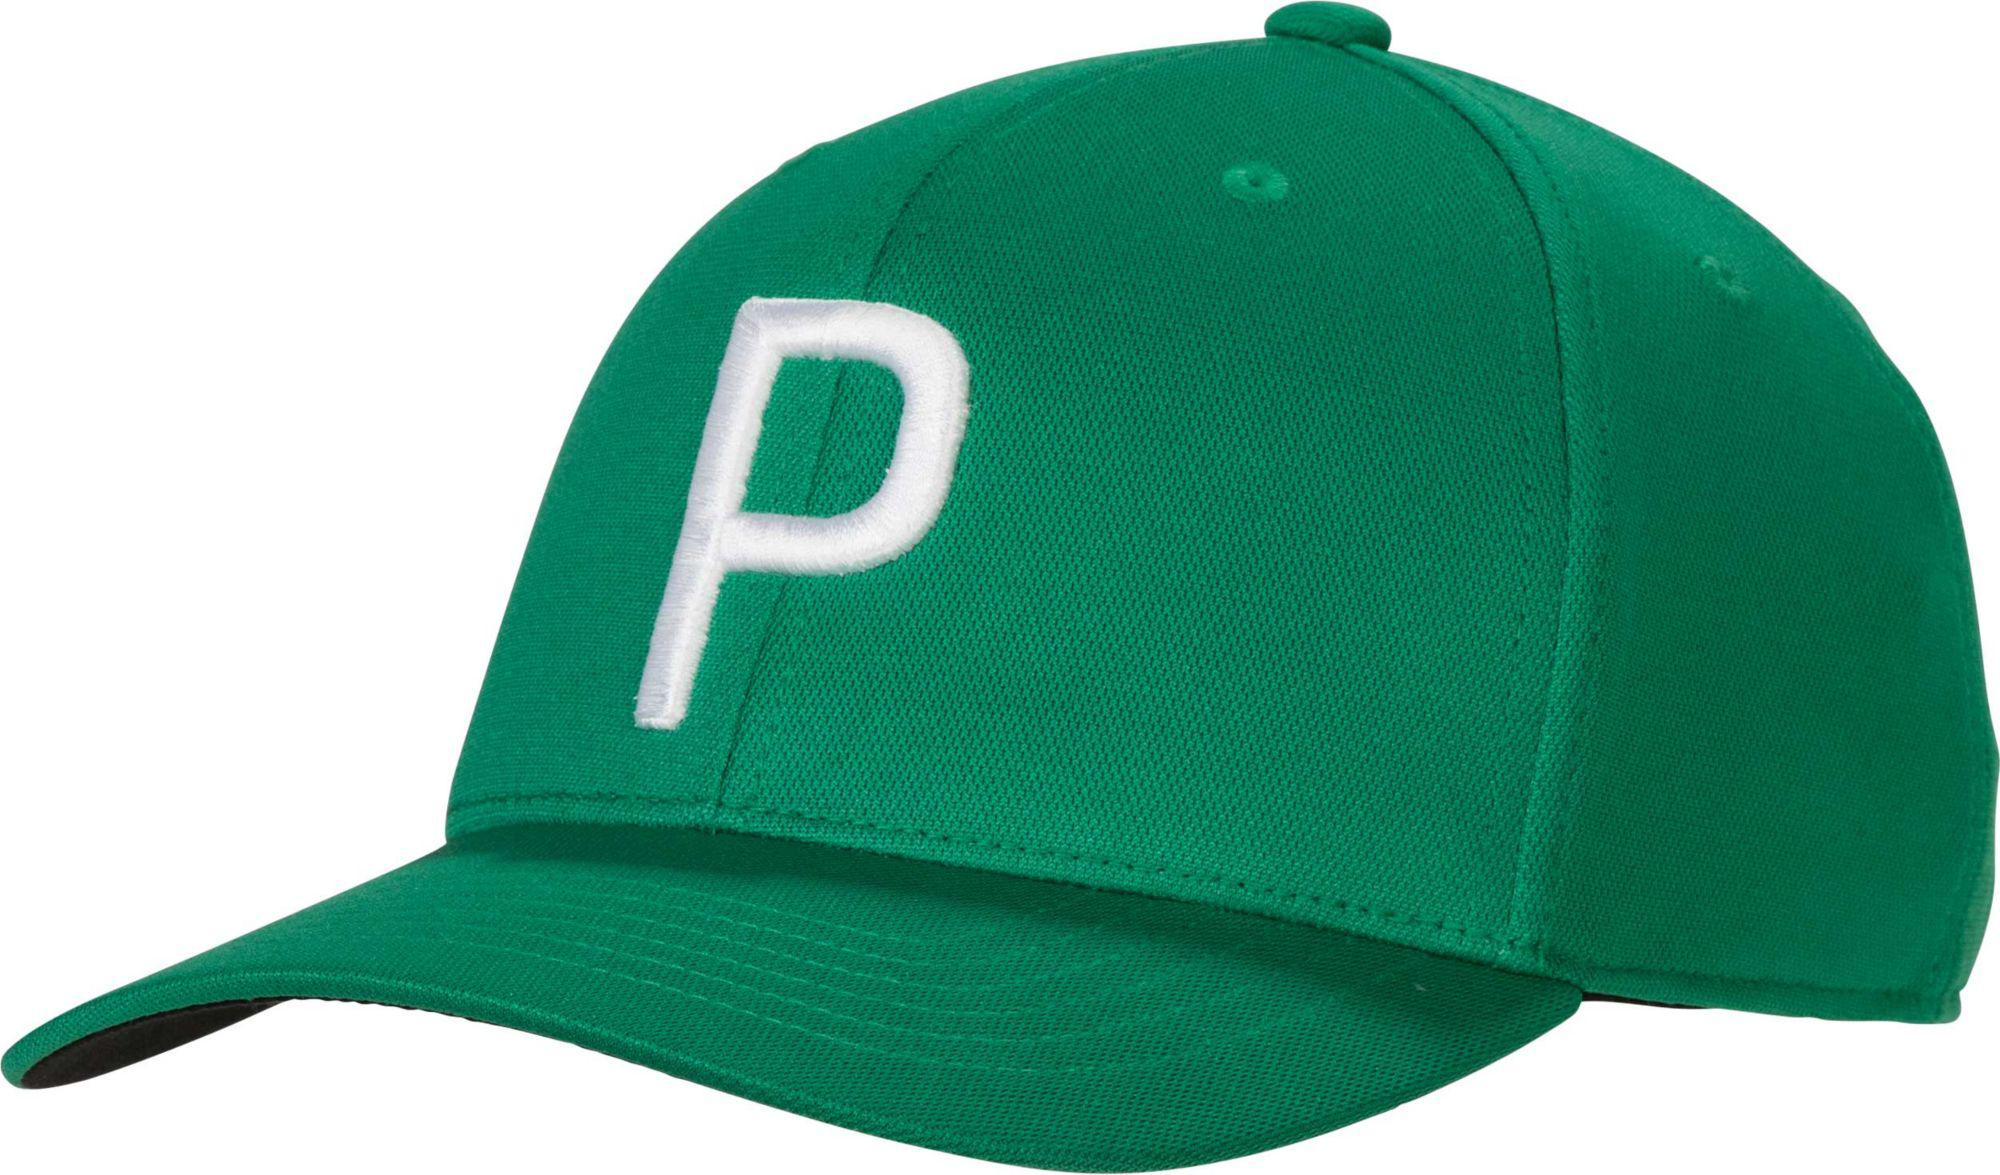 58280604 PUMA P 110 Recyclable Snapback Golf Hat in Green for Men - Lyst